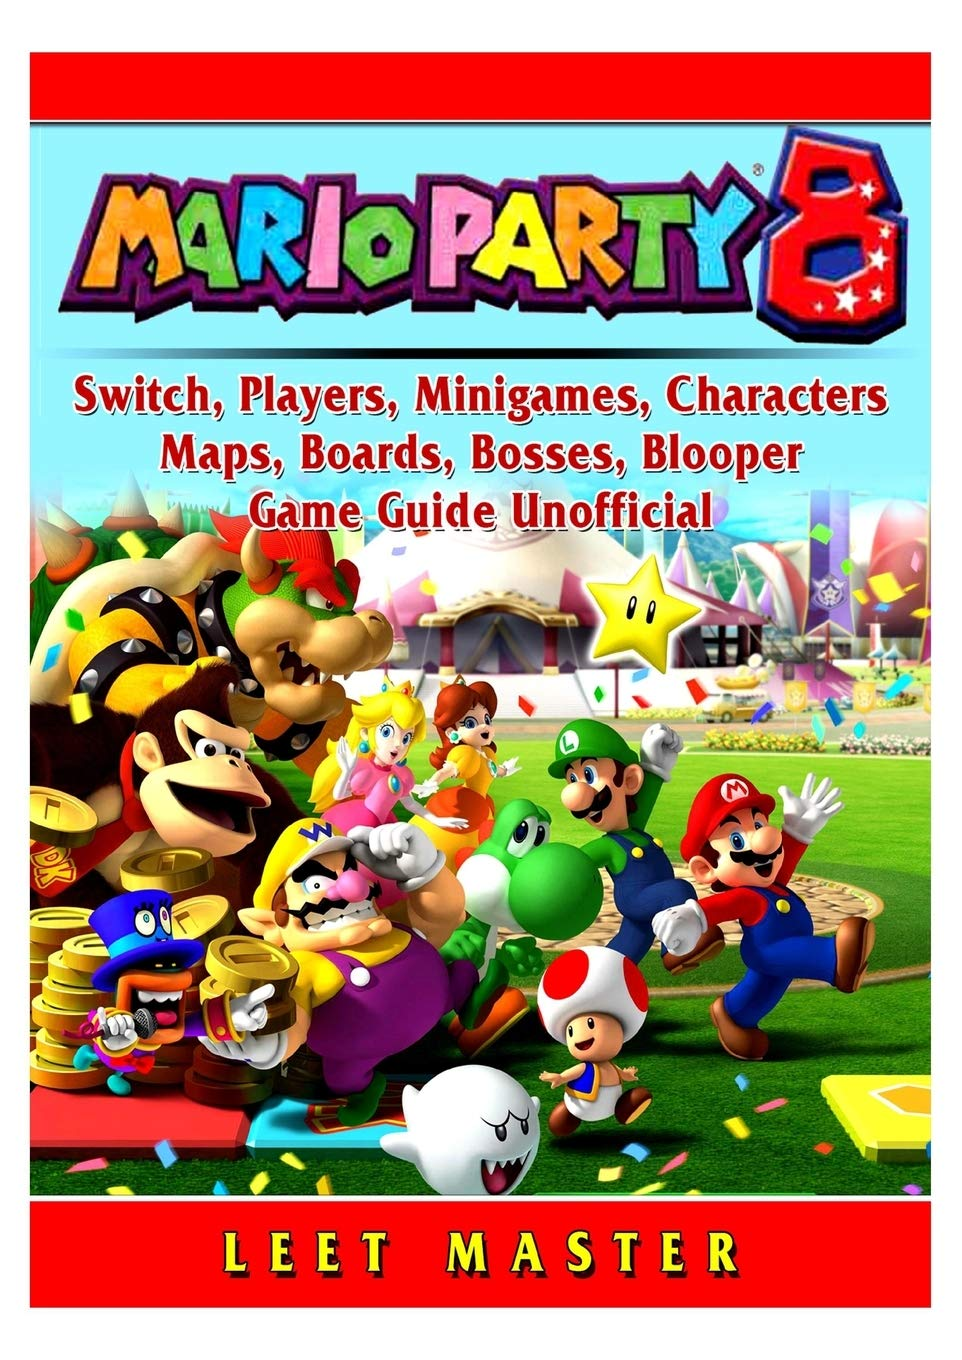 Super Mario Party 8, Switch, Players, Minigames, Characters, Maps ...